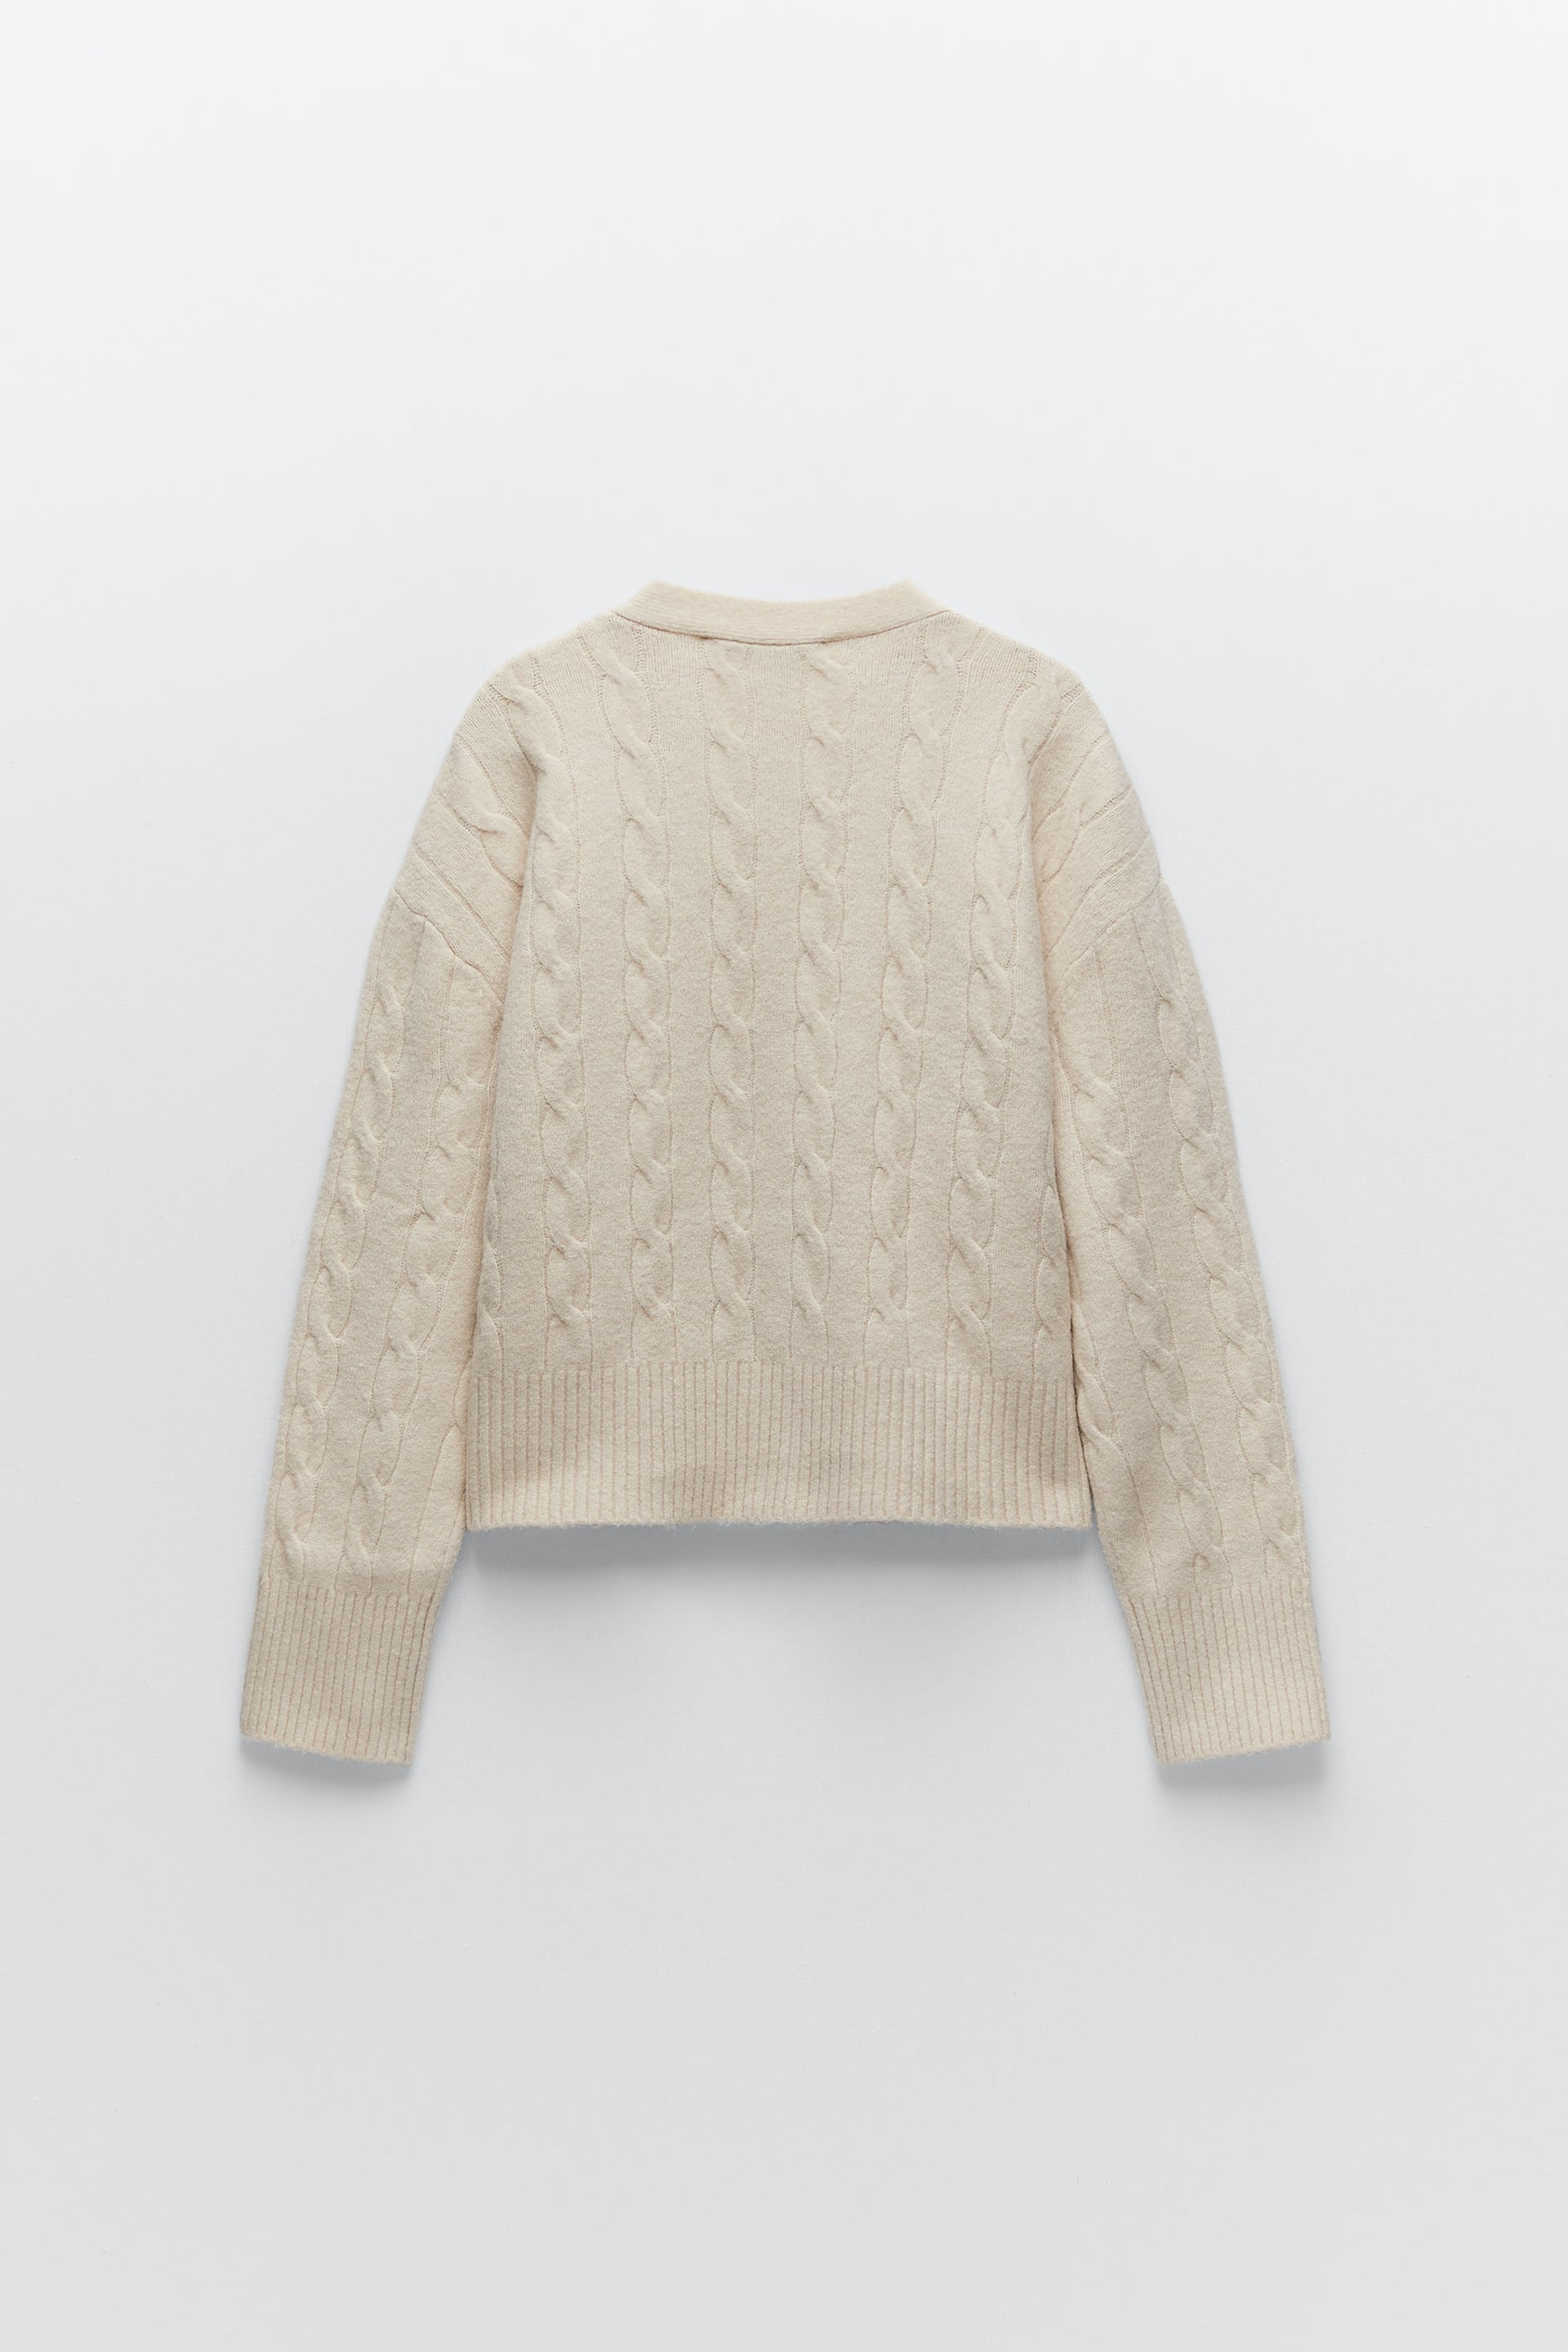 4331//010 ECRU Details about  /ZARA BNWT CABLE-KNIT CARDIGAN ALL SIZES REF